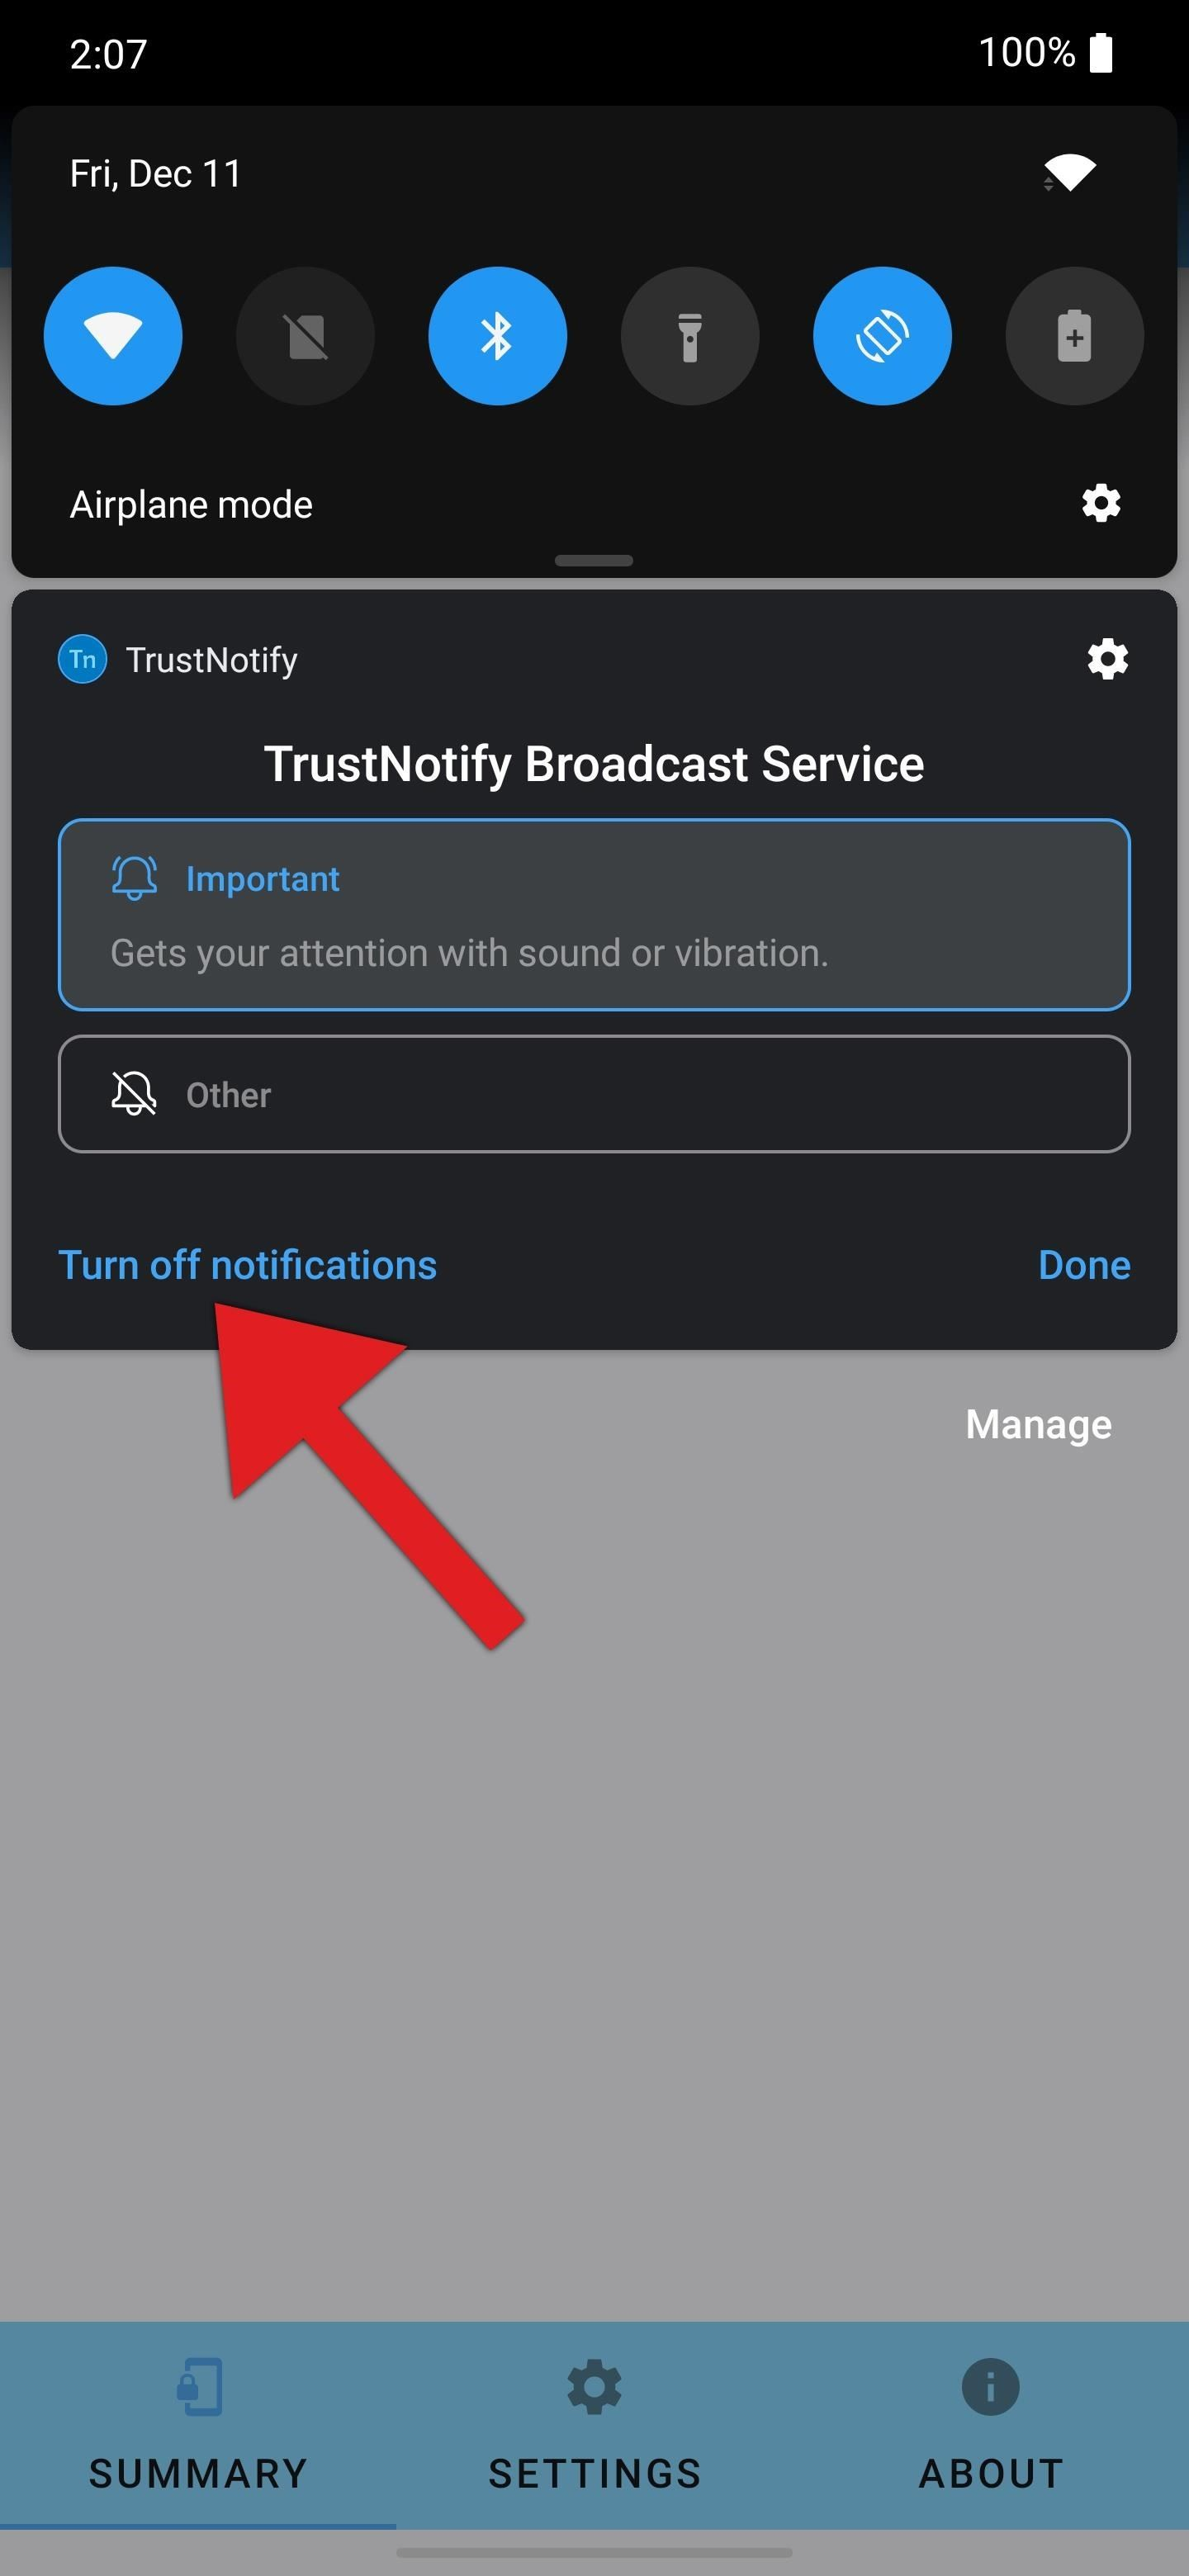 How to Get the iPhone's Auto-Hiding Lock Screen Notifications on Android